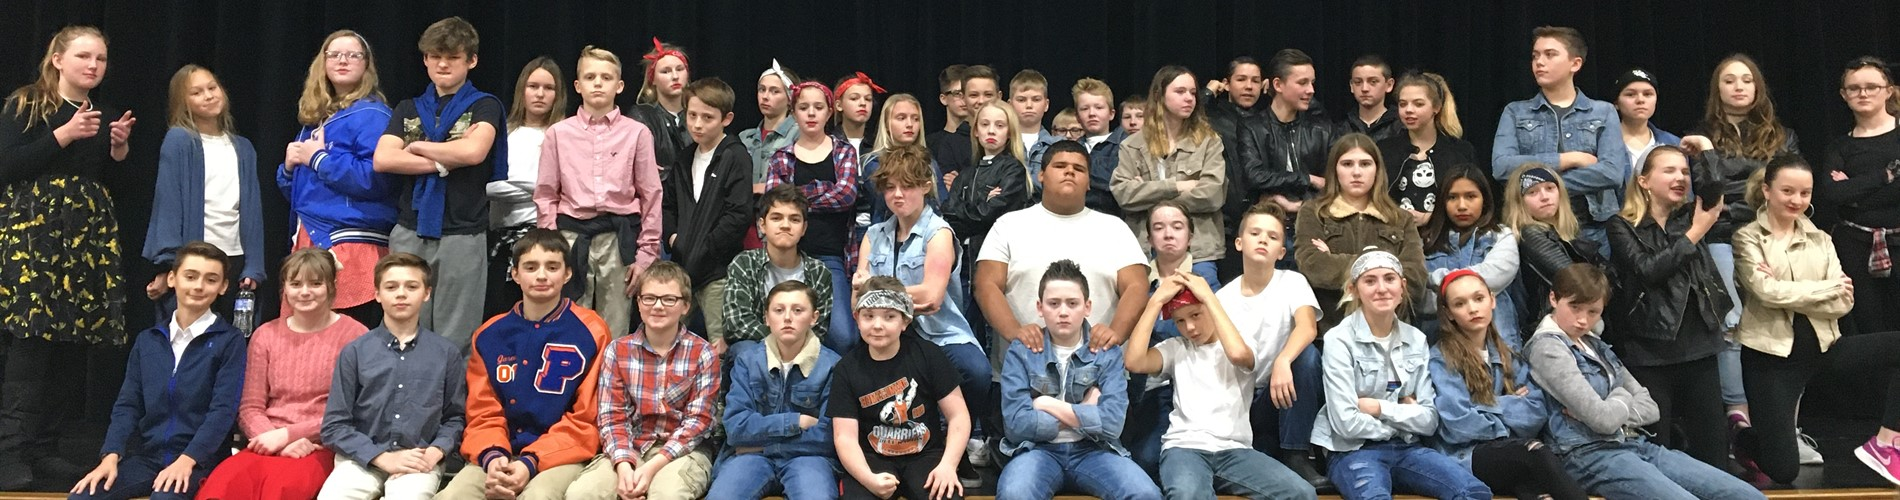 Students dressed as characters from the book, The Outsiders.